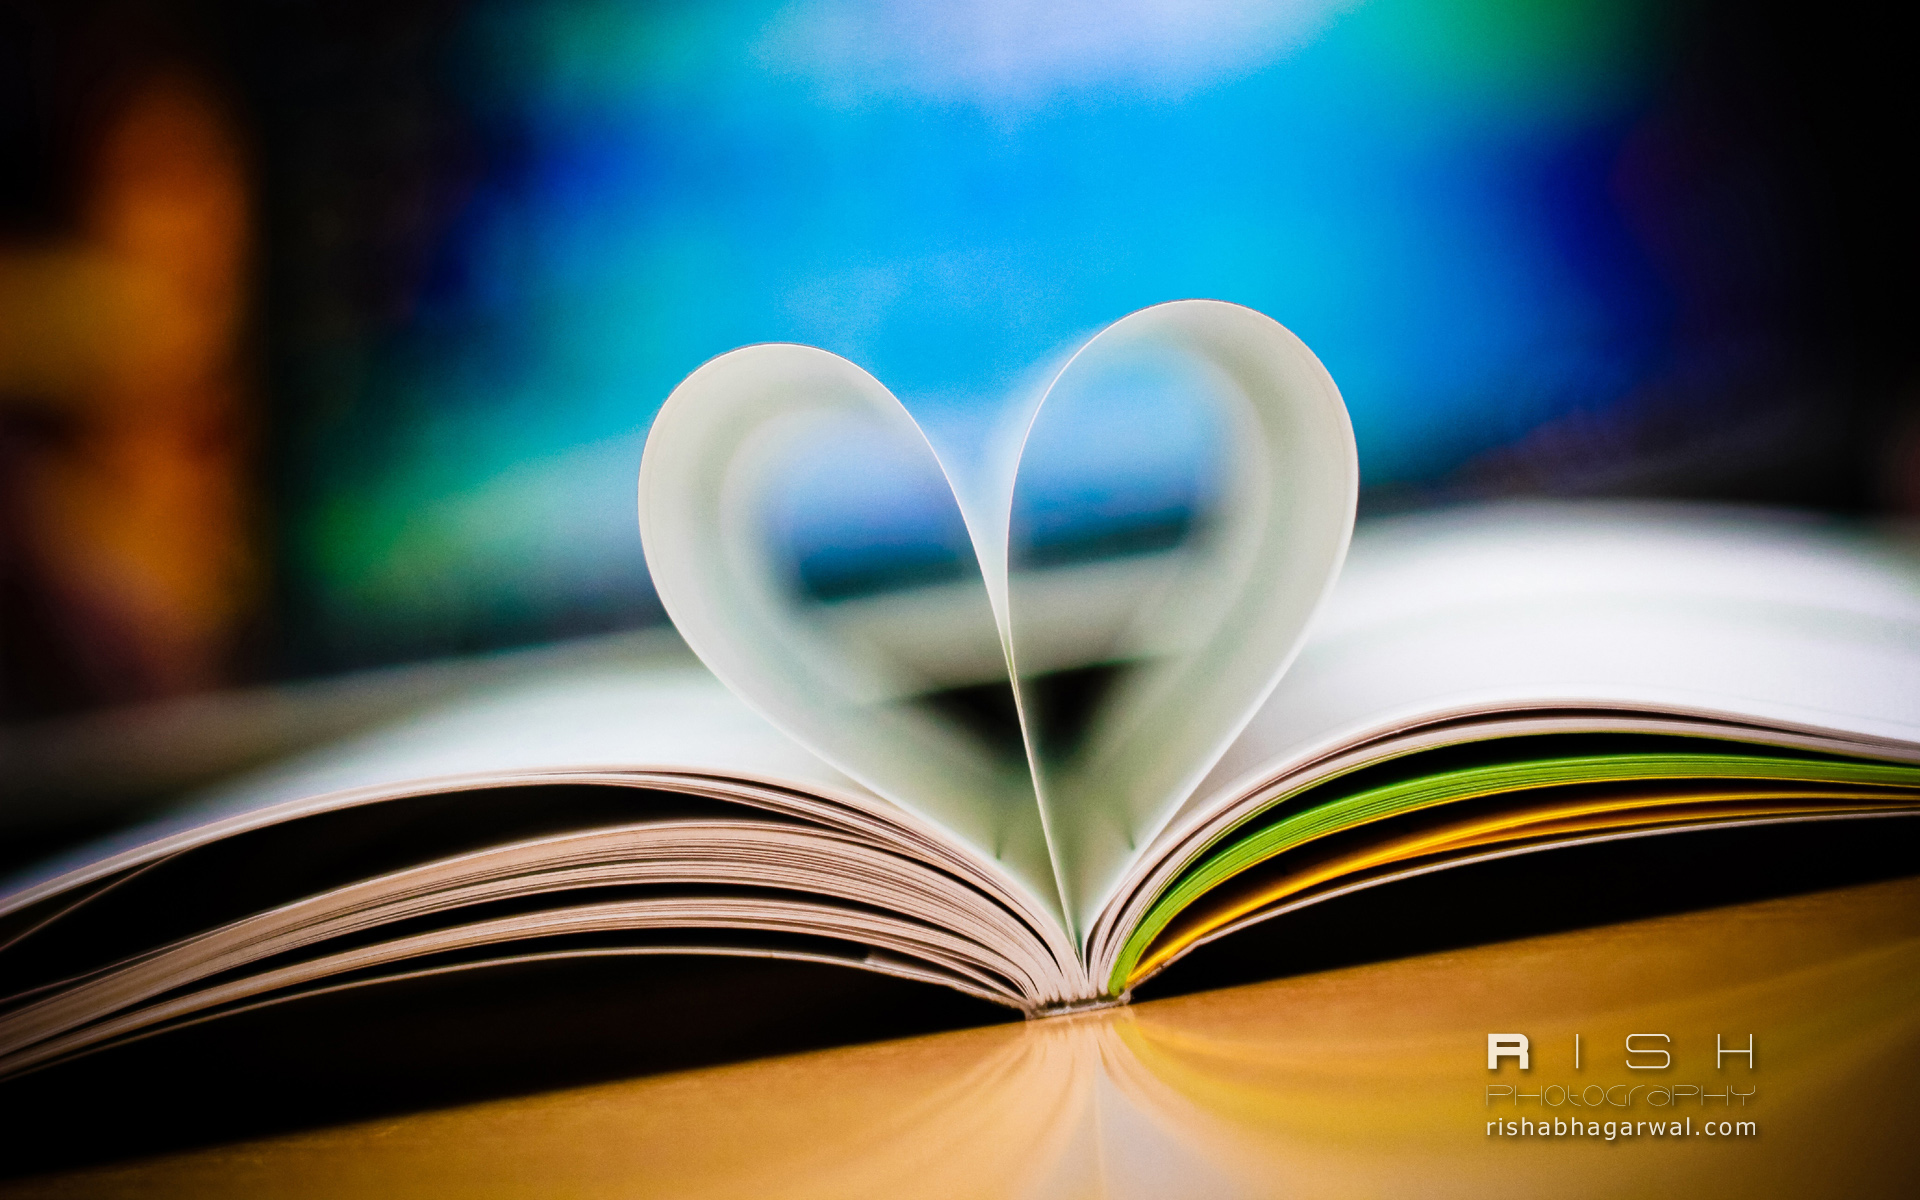 love book book, love, teddy wallpaper download - high resolution 4k